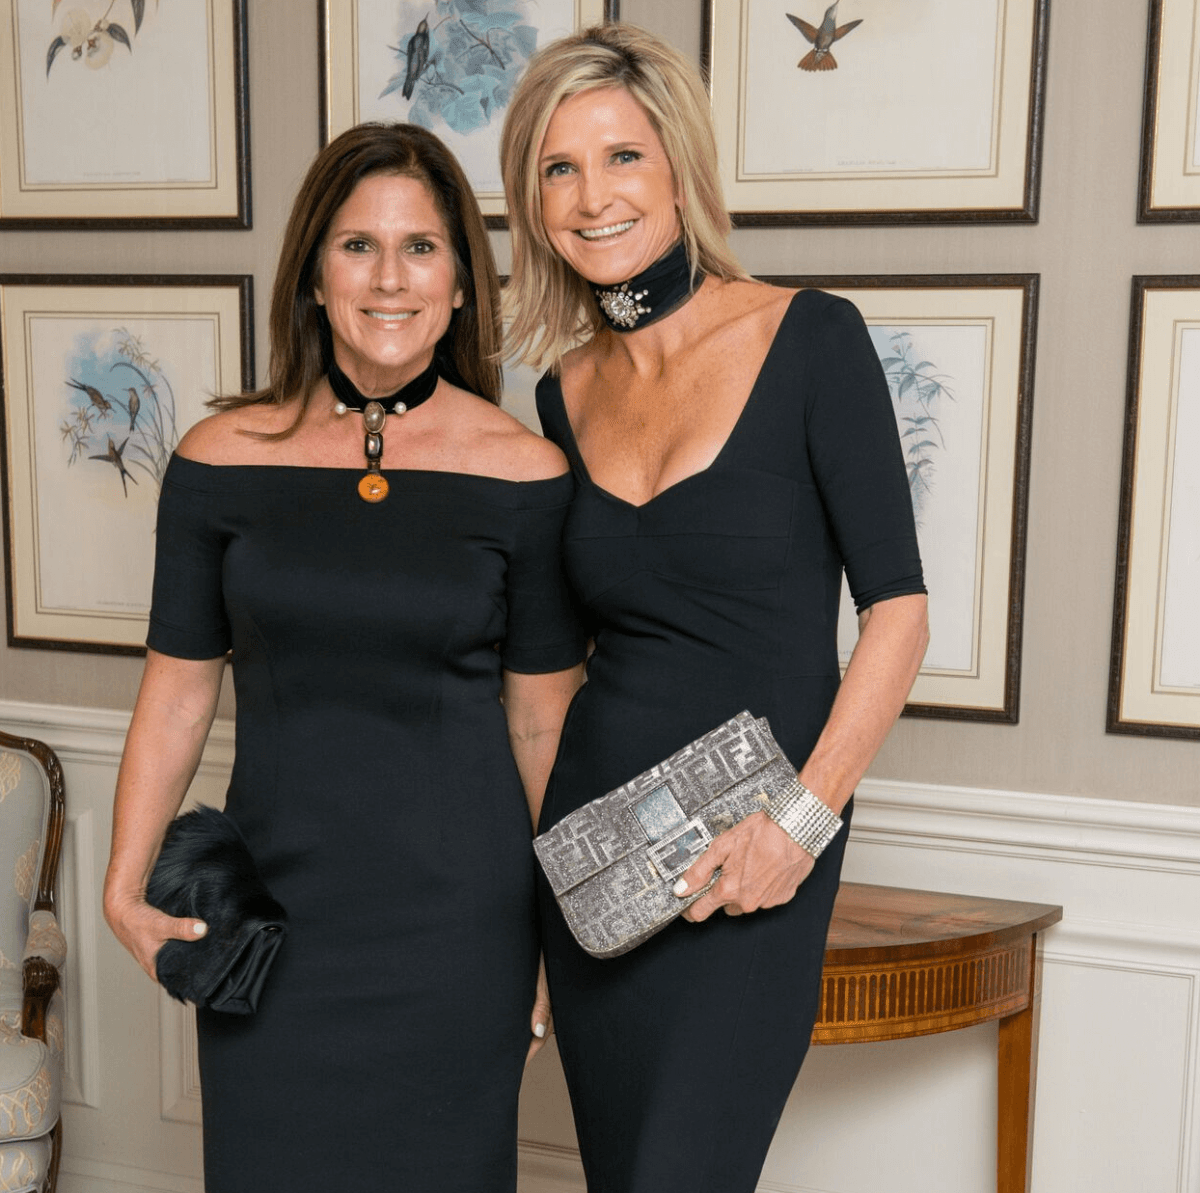 Laura Shoppa, Lisa McCord at Rice Honors Gala